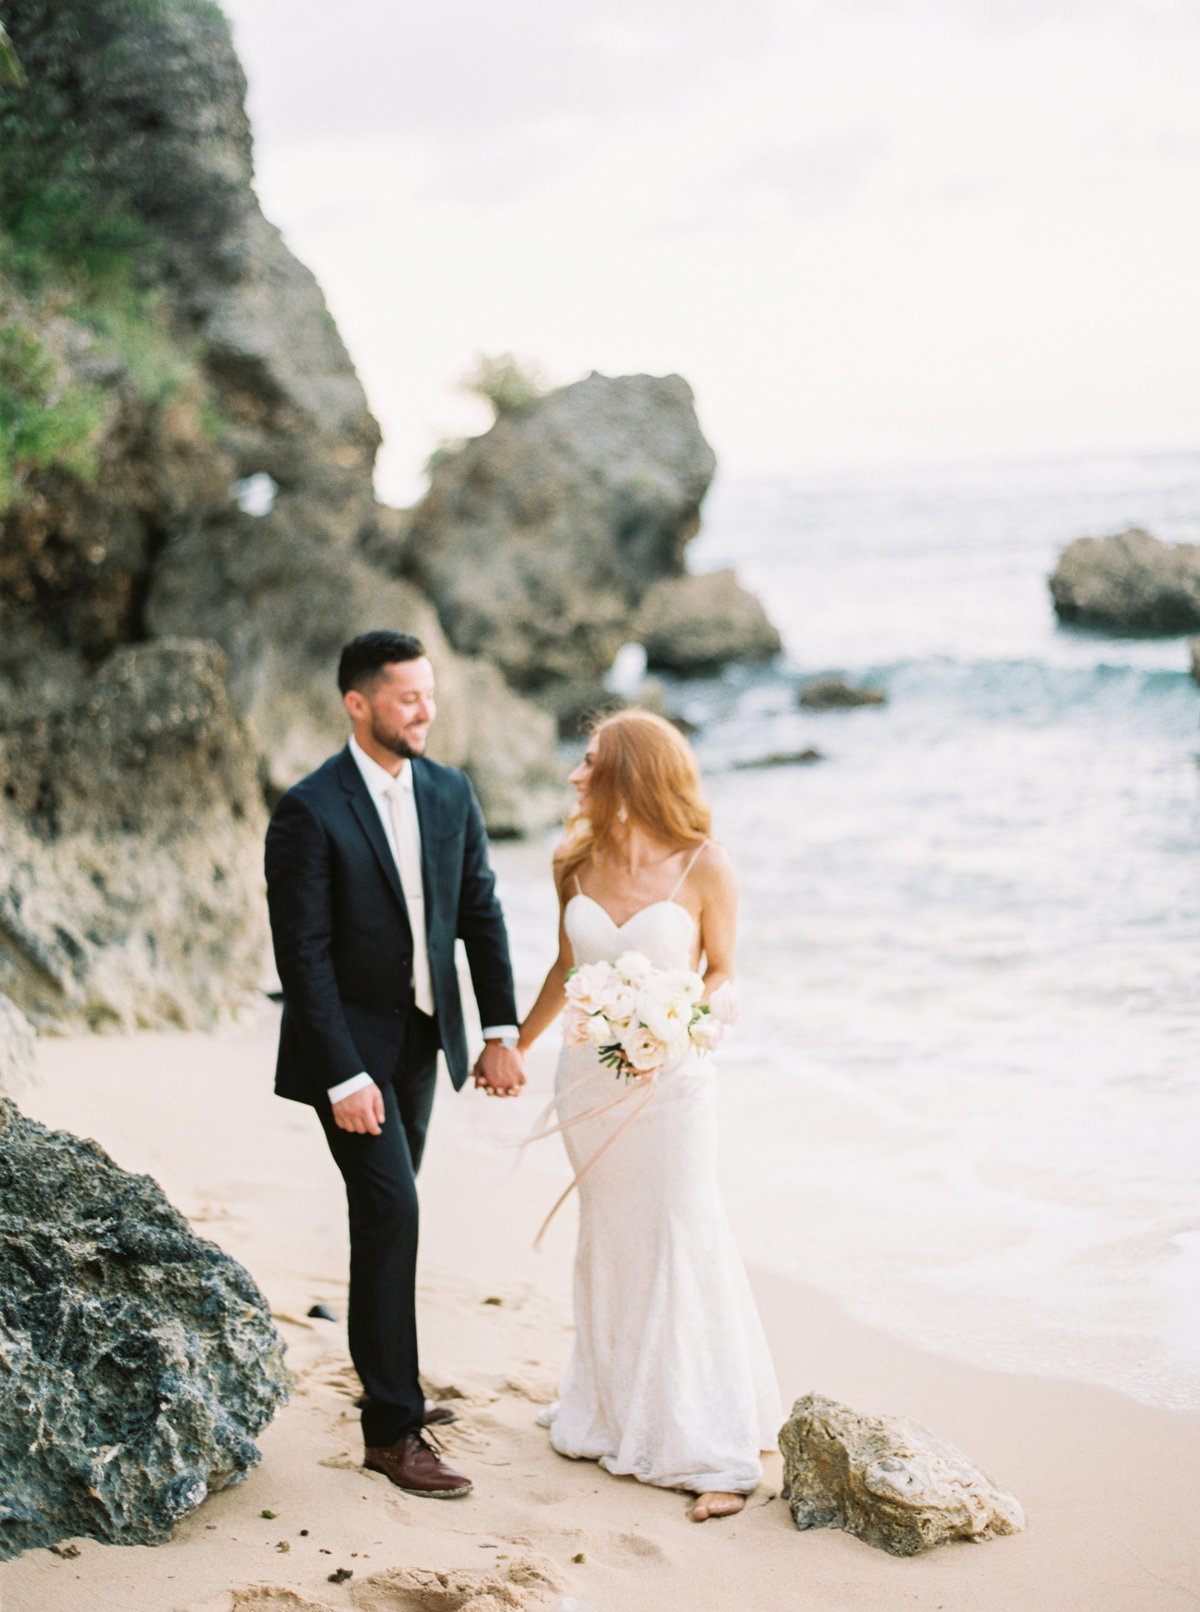 Dominican Republic Wedding - Mary Claire Photography-32